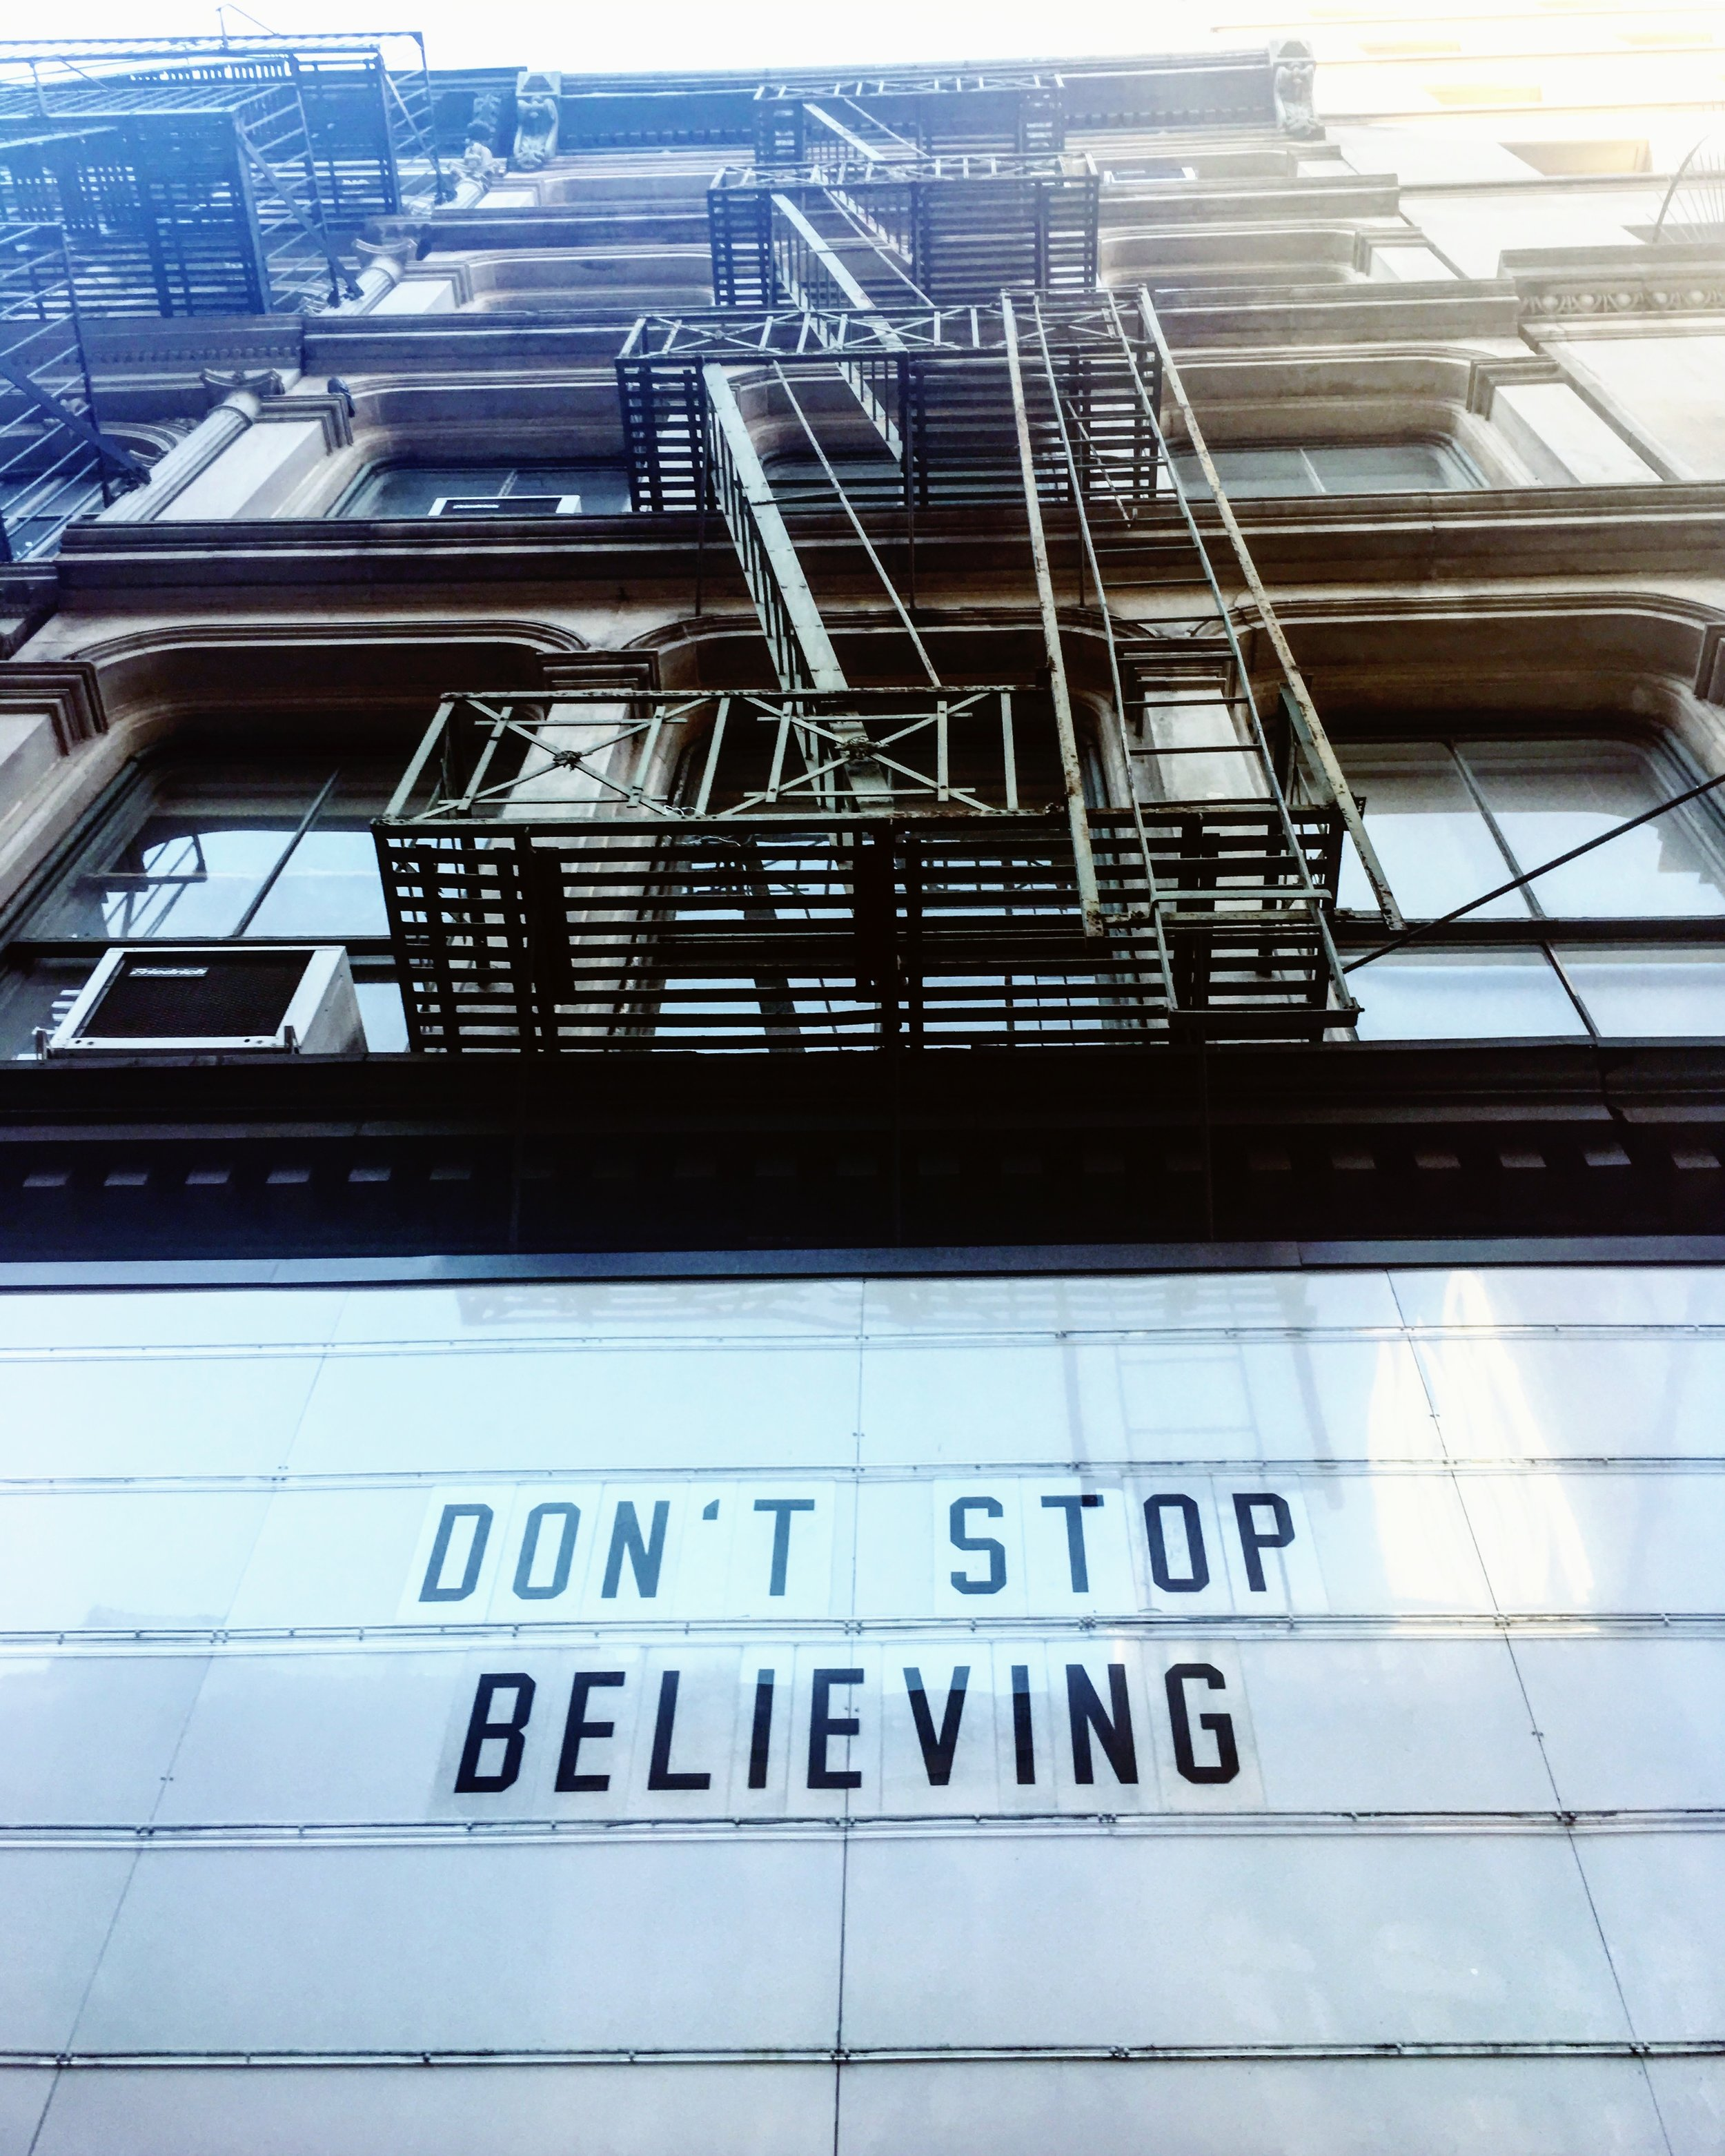 Another little reminder to always look up ... brought to you by the sidewalks of New York.